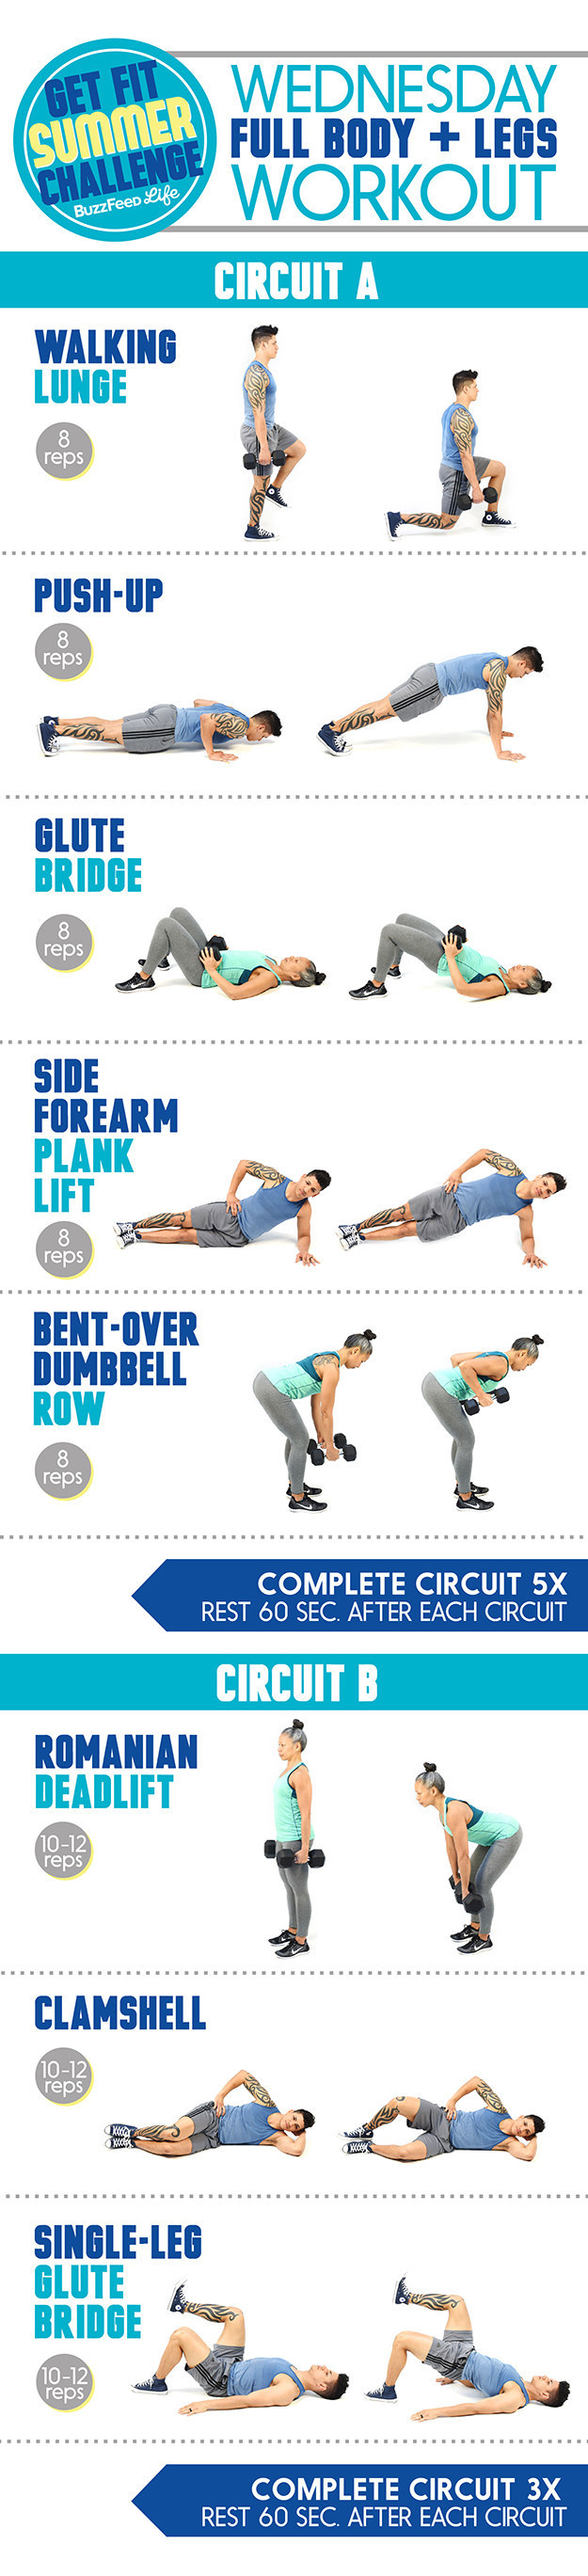 Here s The Wednesday Workout For The Get Fit Summer Challenge. Here s The Wednesday Workout For The Get Fit Summer Challenge